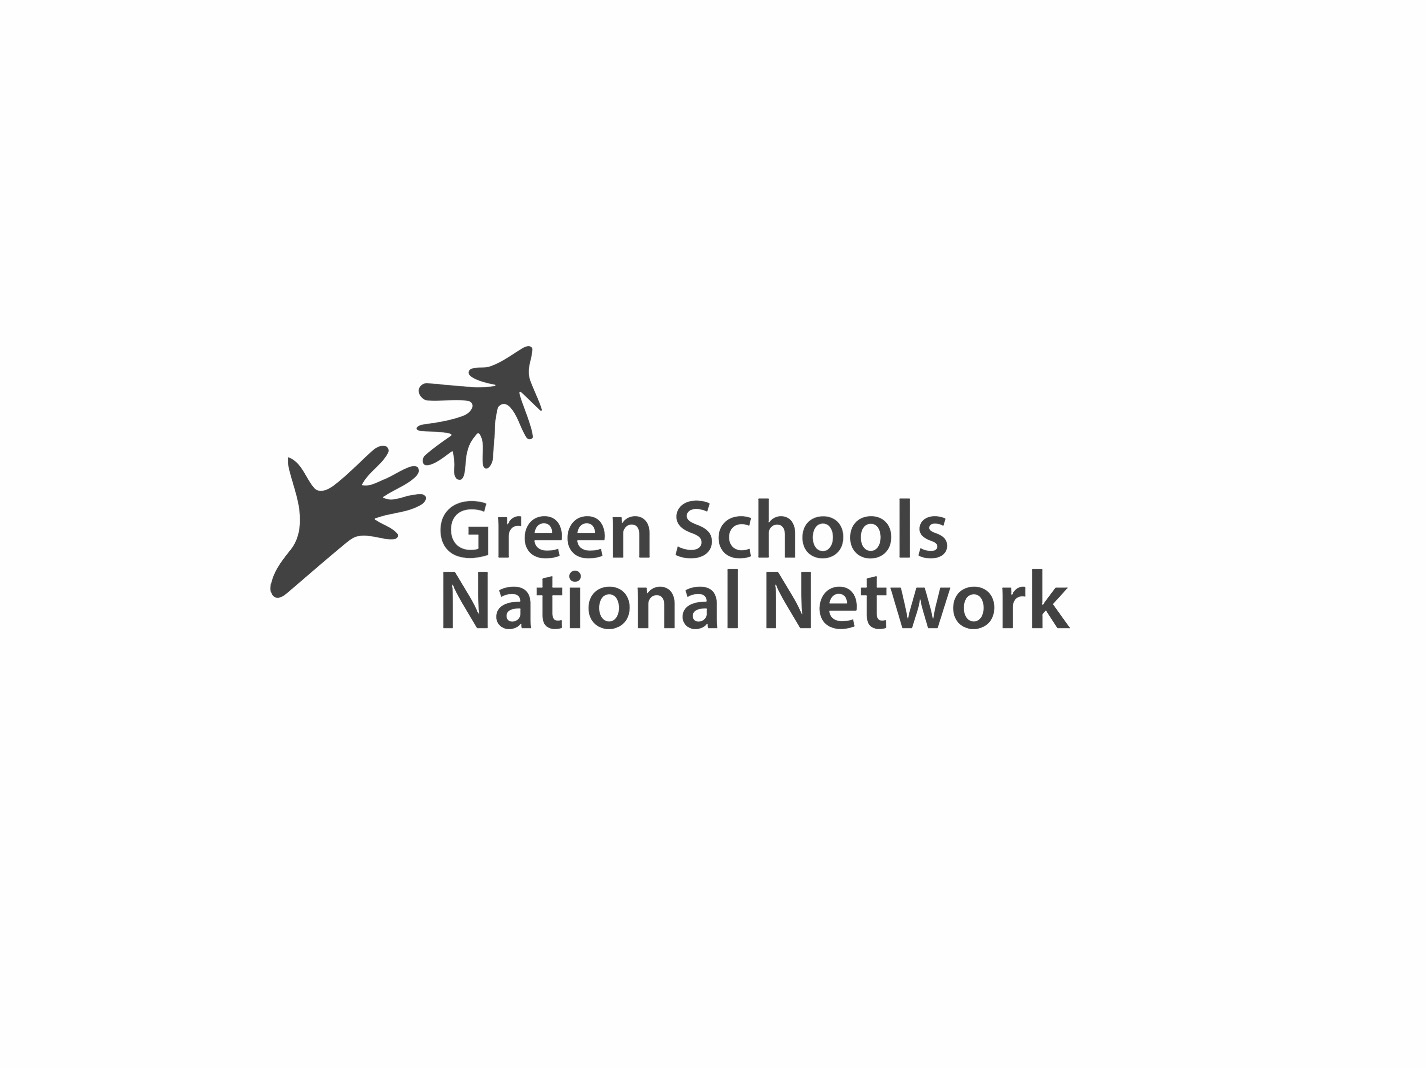 Green Schools Article